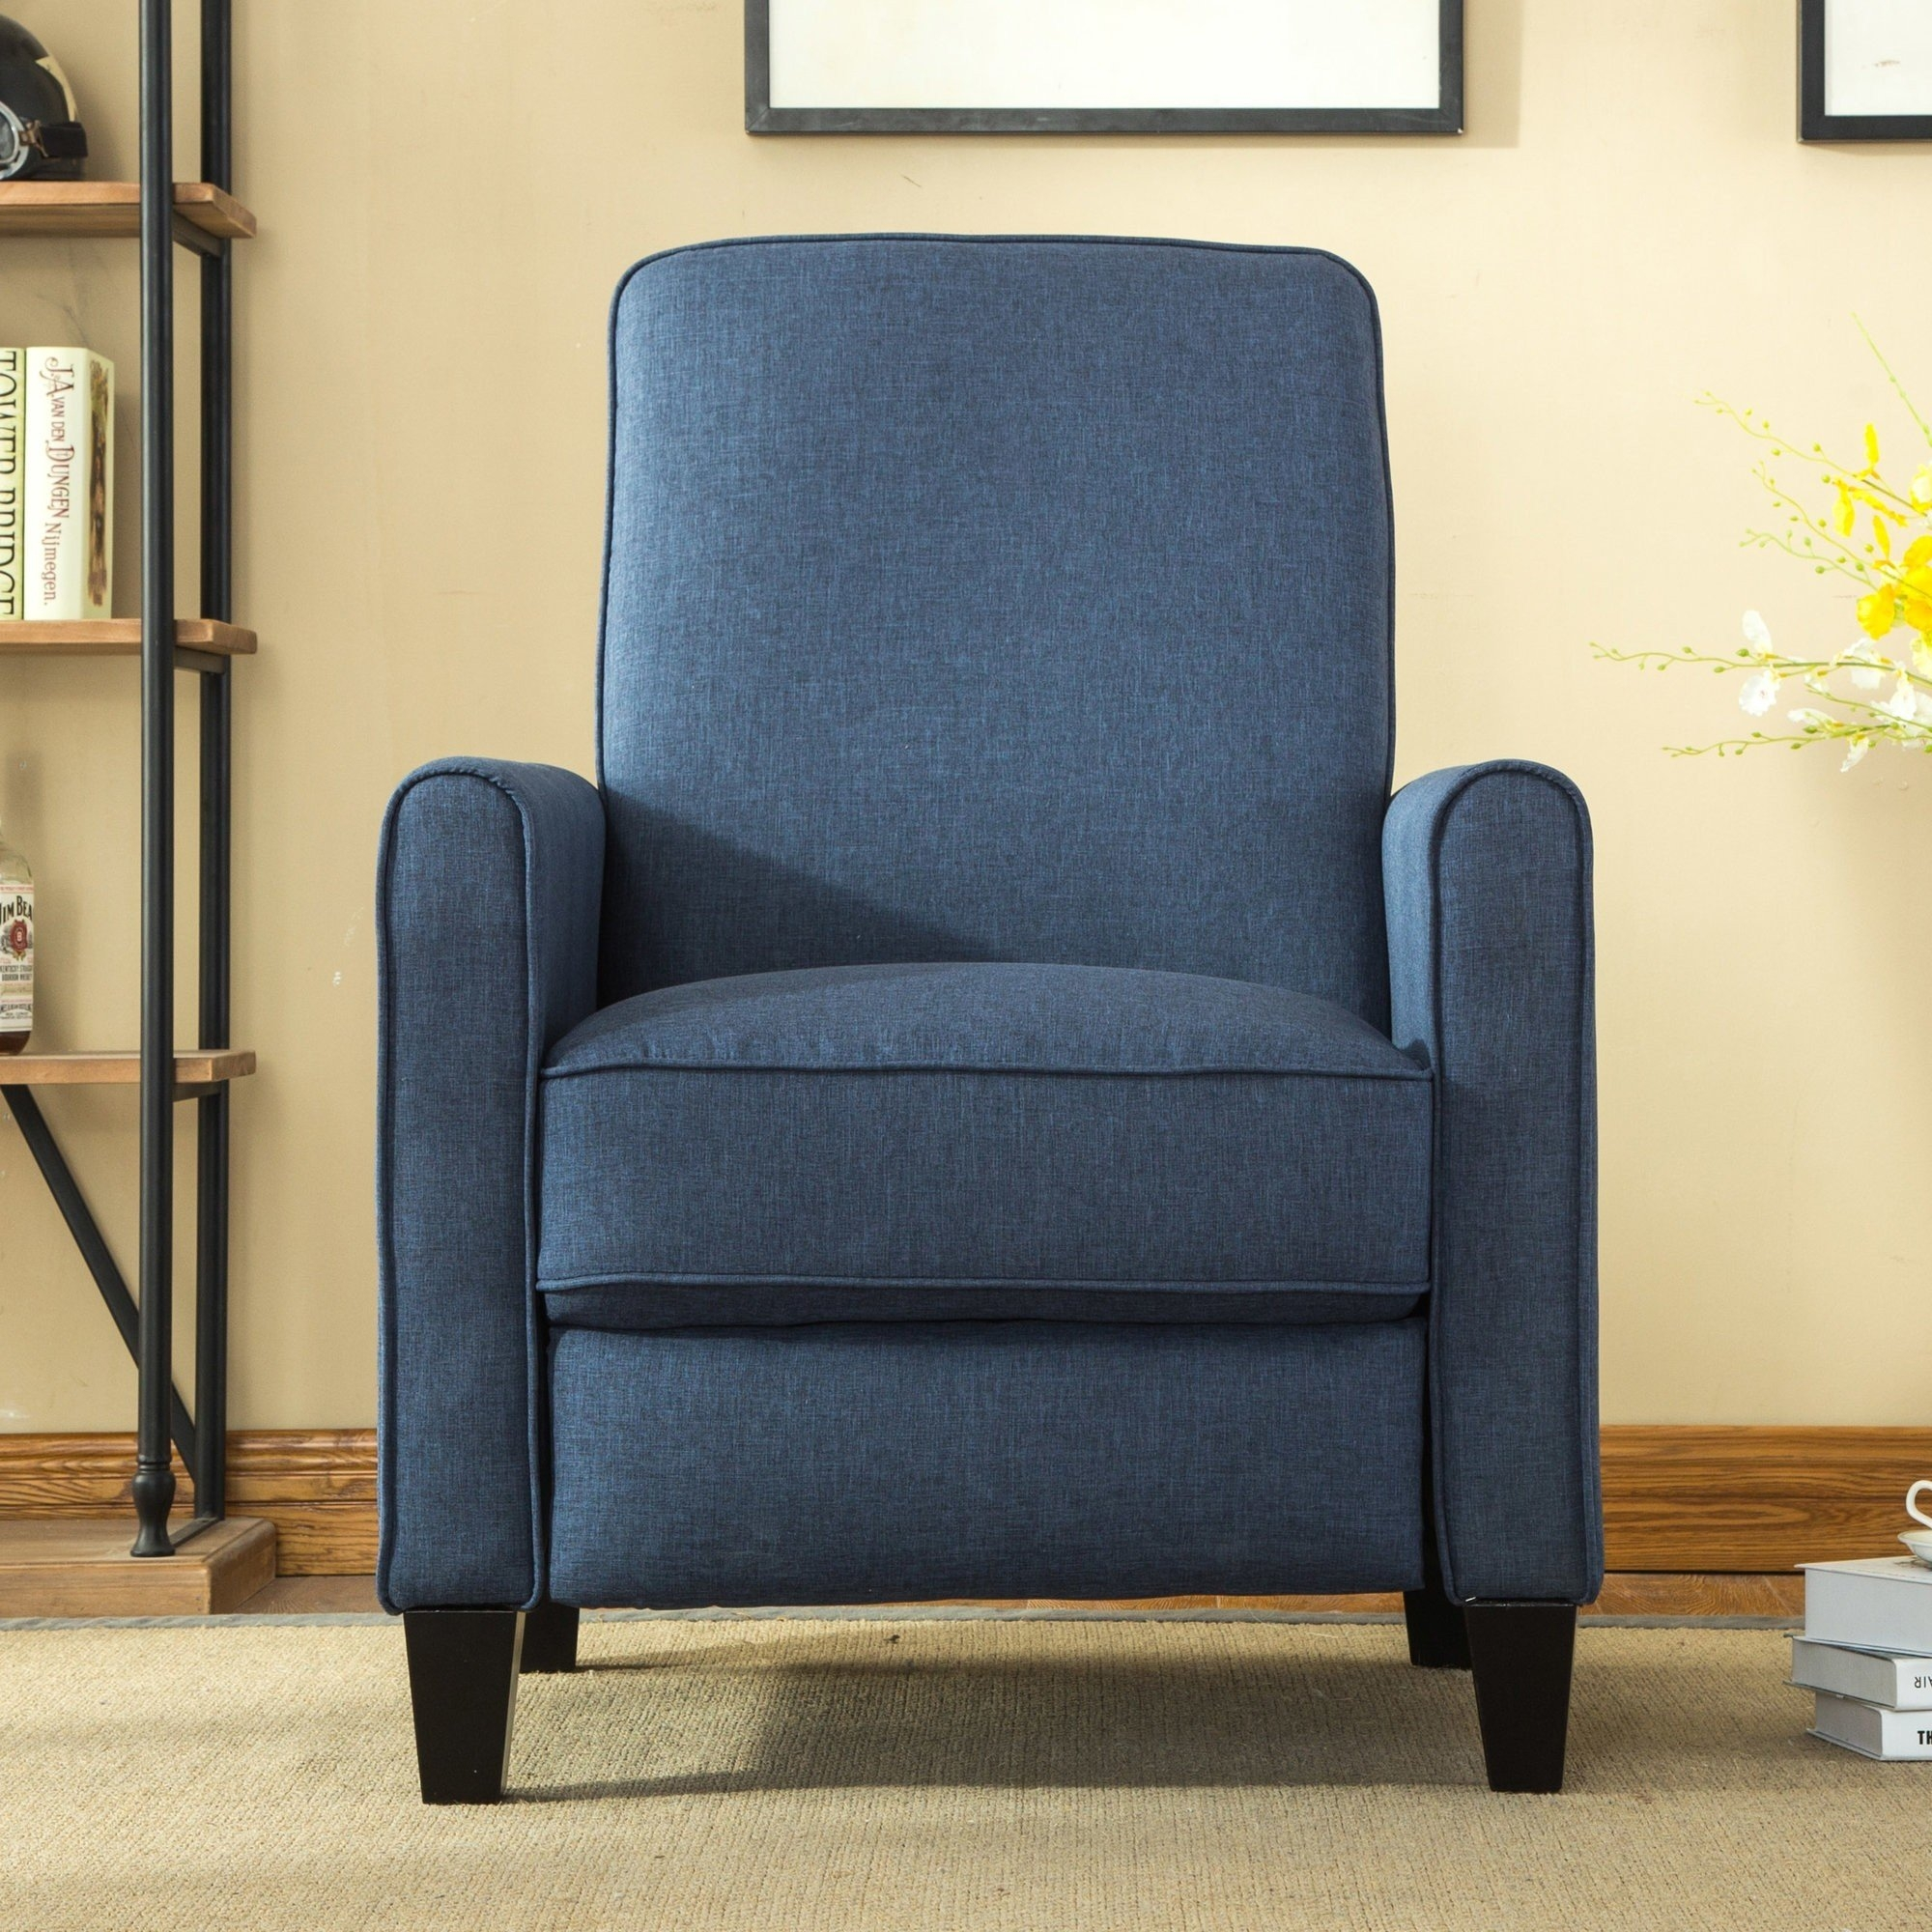 Small Club Chair Recliners For Small Spaces Up To 70 Off Visual Hunt